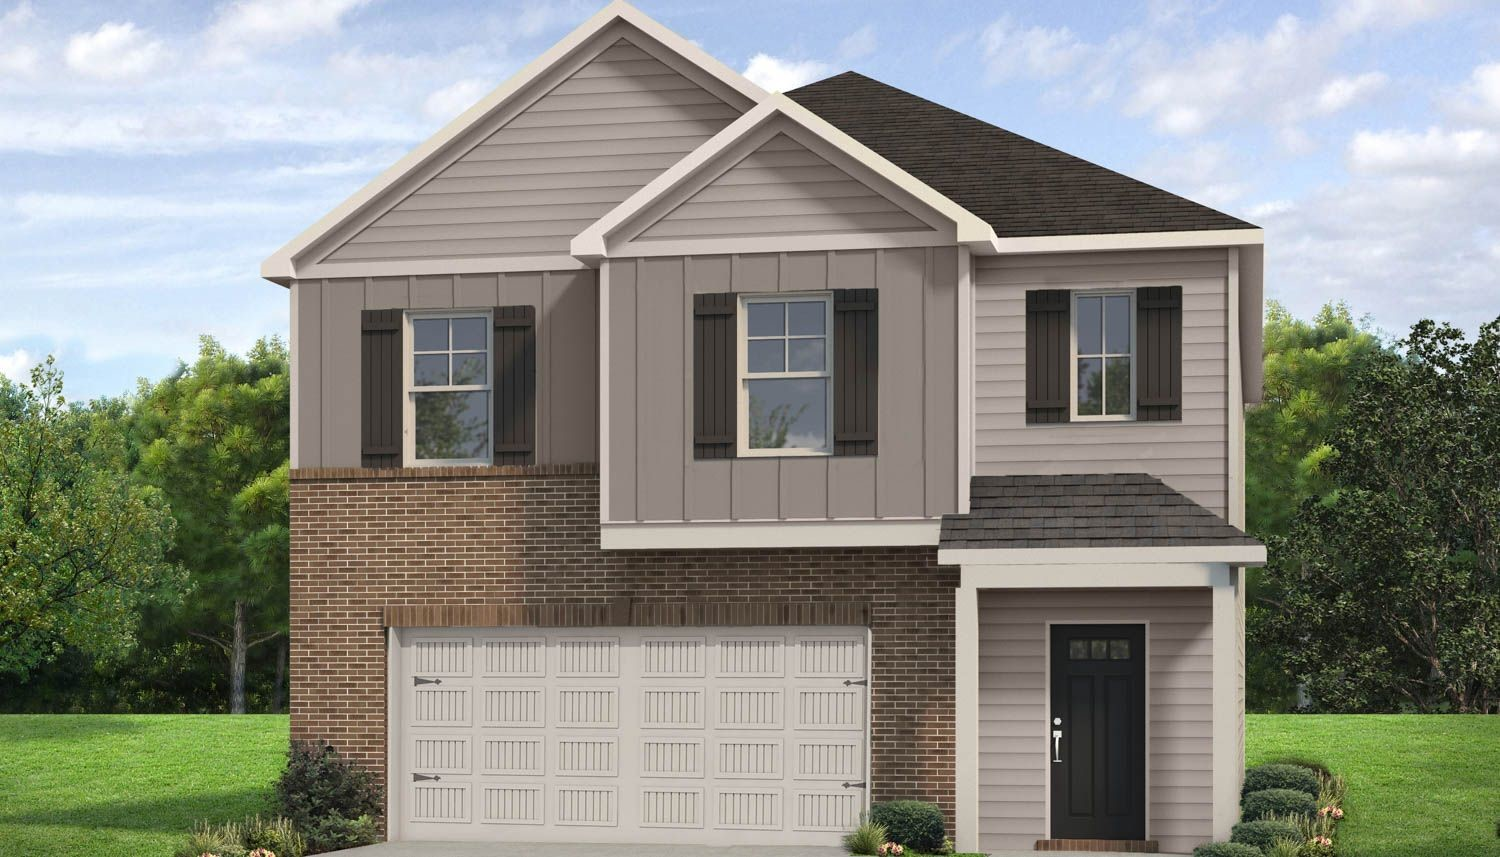 Move In Ready New Home In Village at Waterford Community